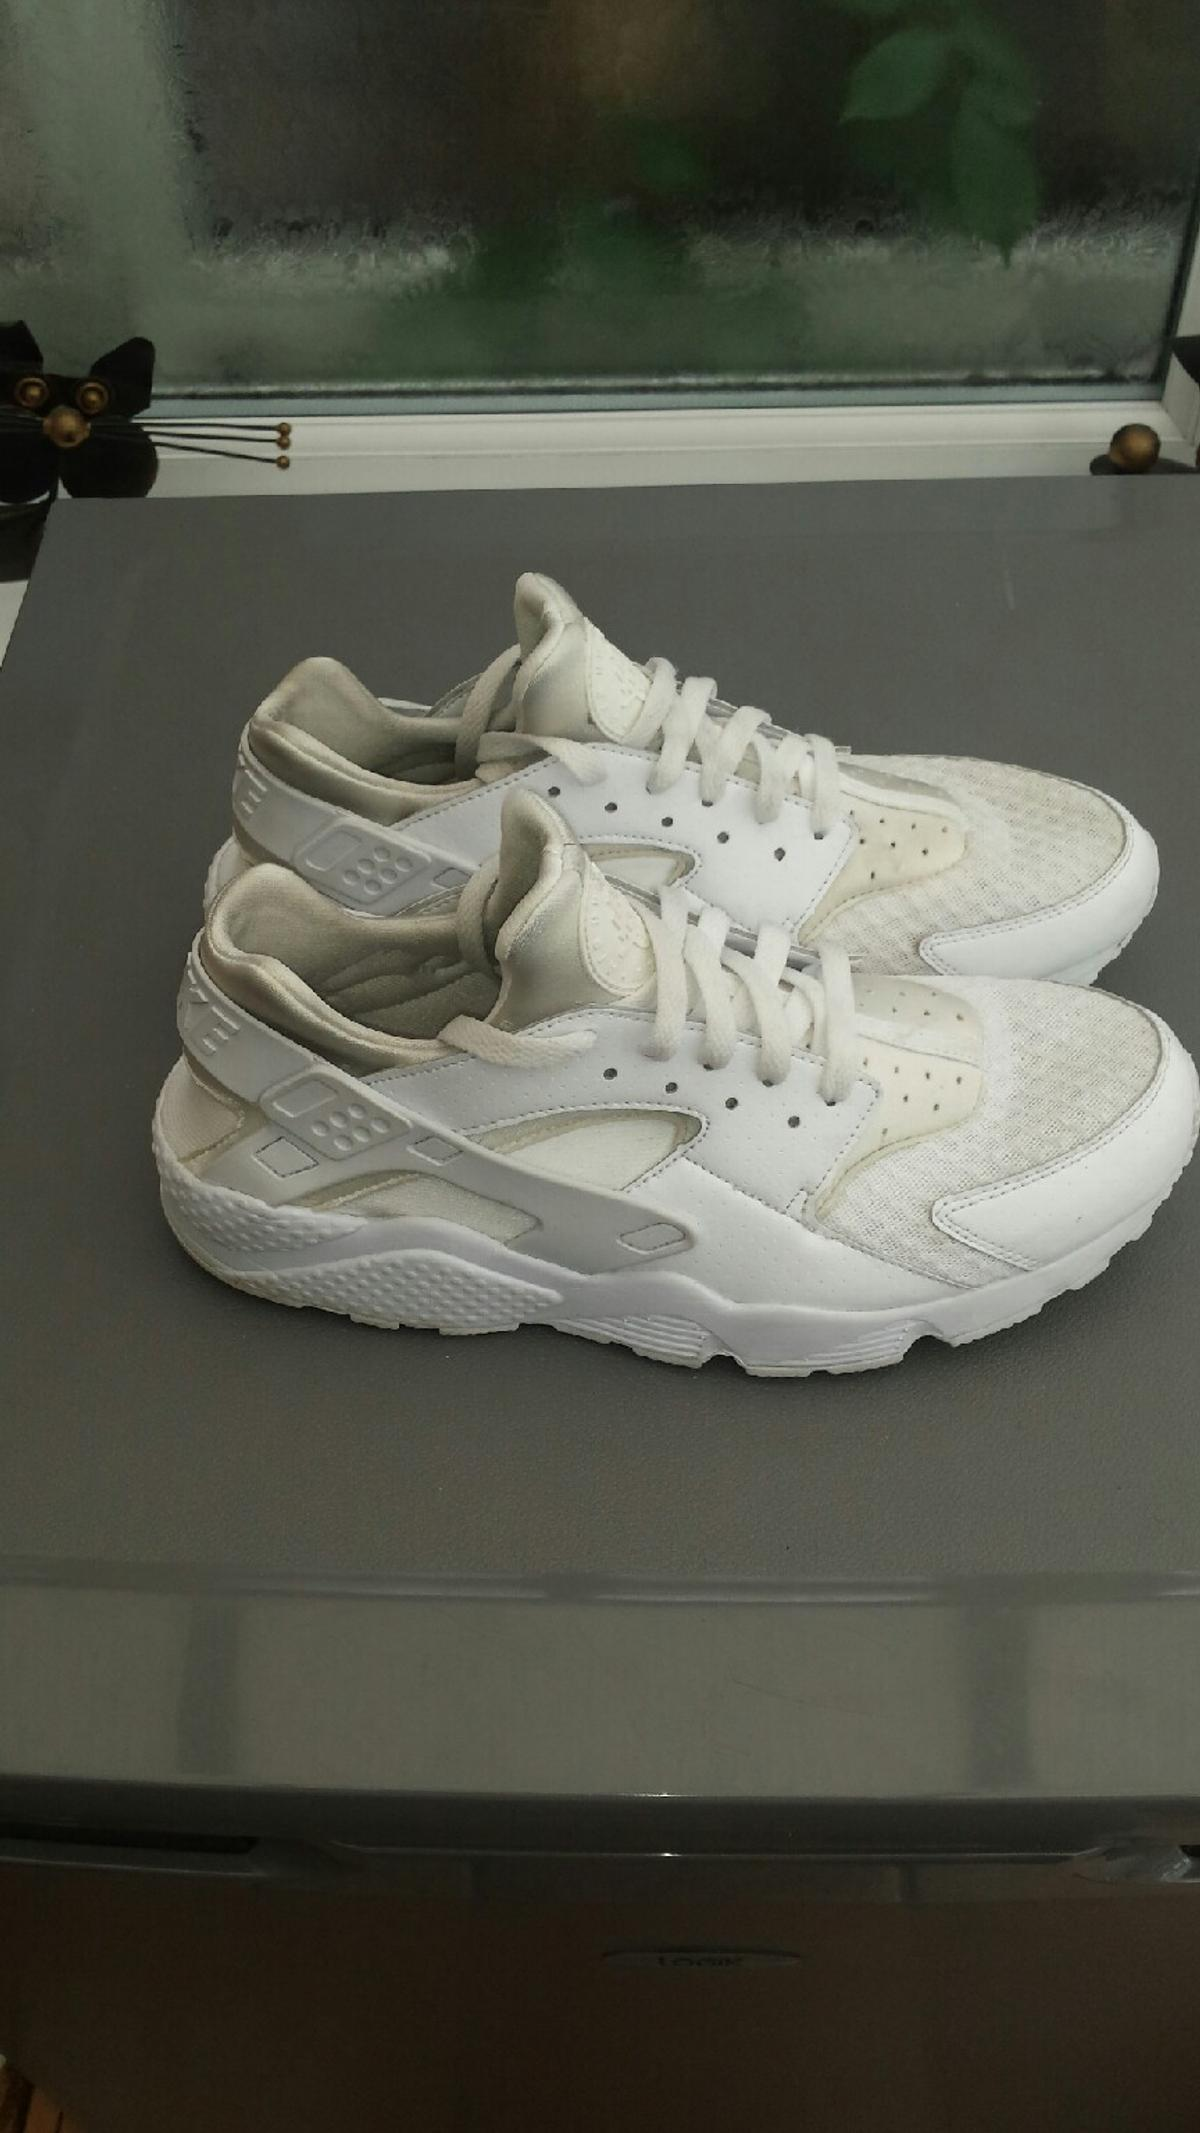 145a78ddefd4 Nike Air Huarache White Platinum in LU2 Luton for £60.00 for sale ...